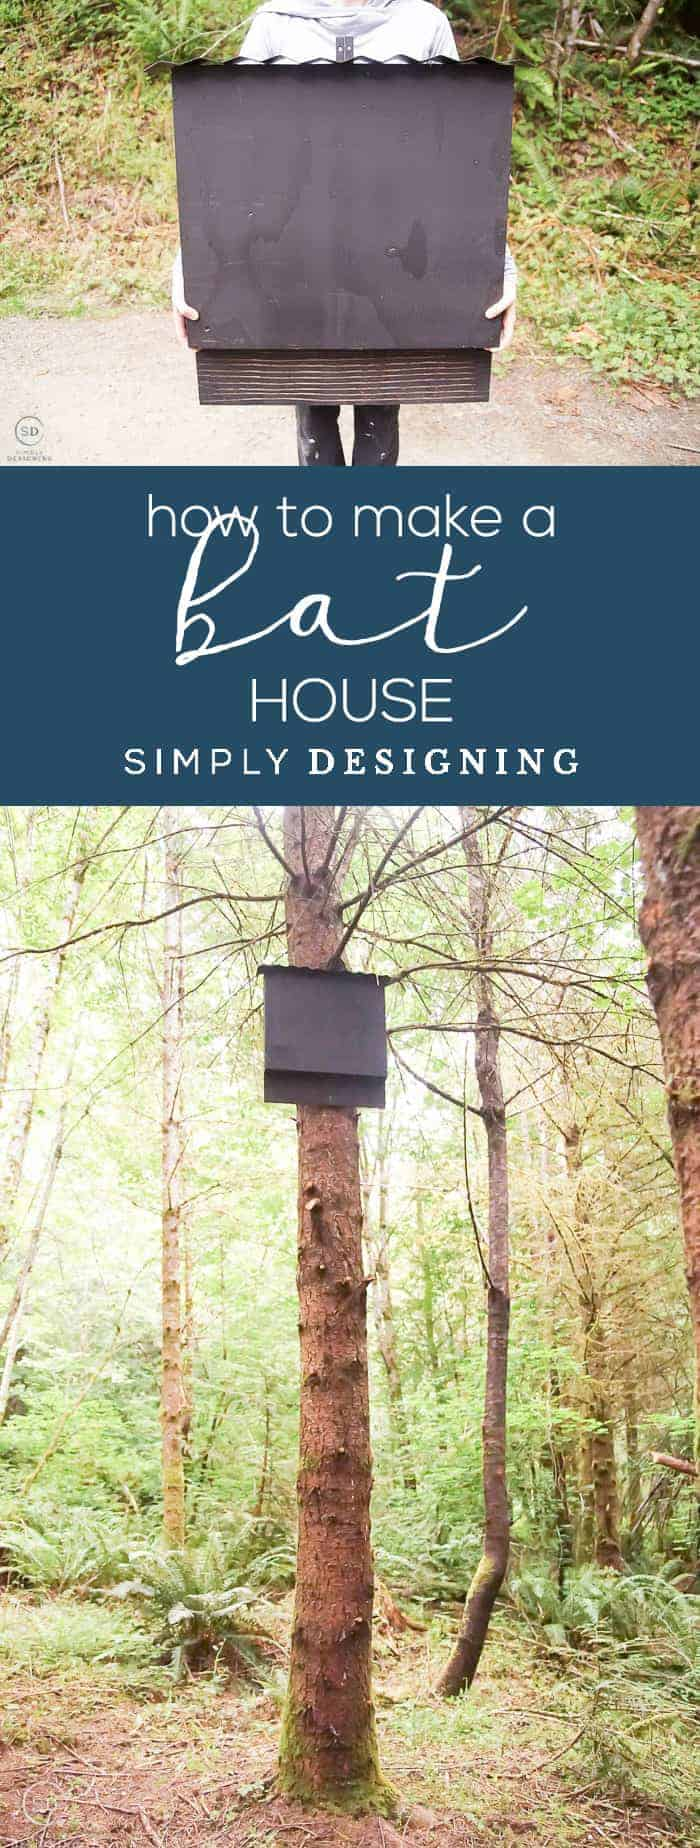 Attract bats to your property with this easy-to-make Bat House It is a simple and inexpensive way to make a DIY bat house